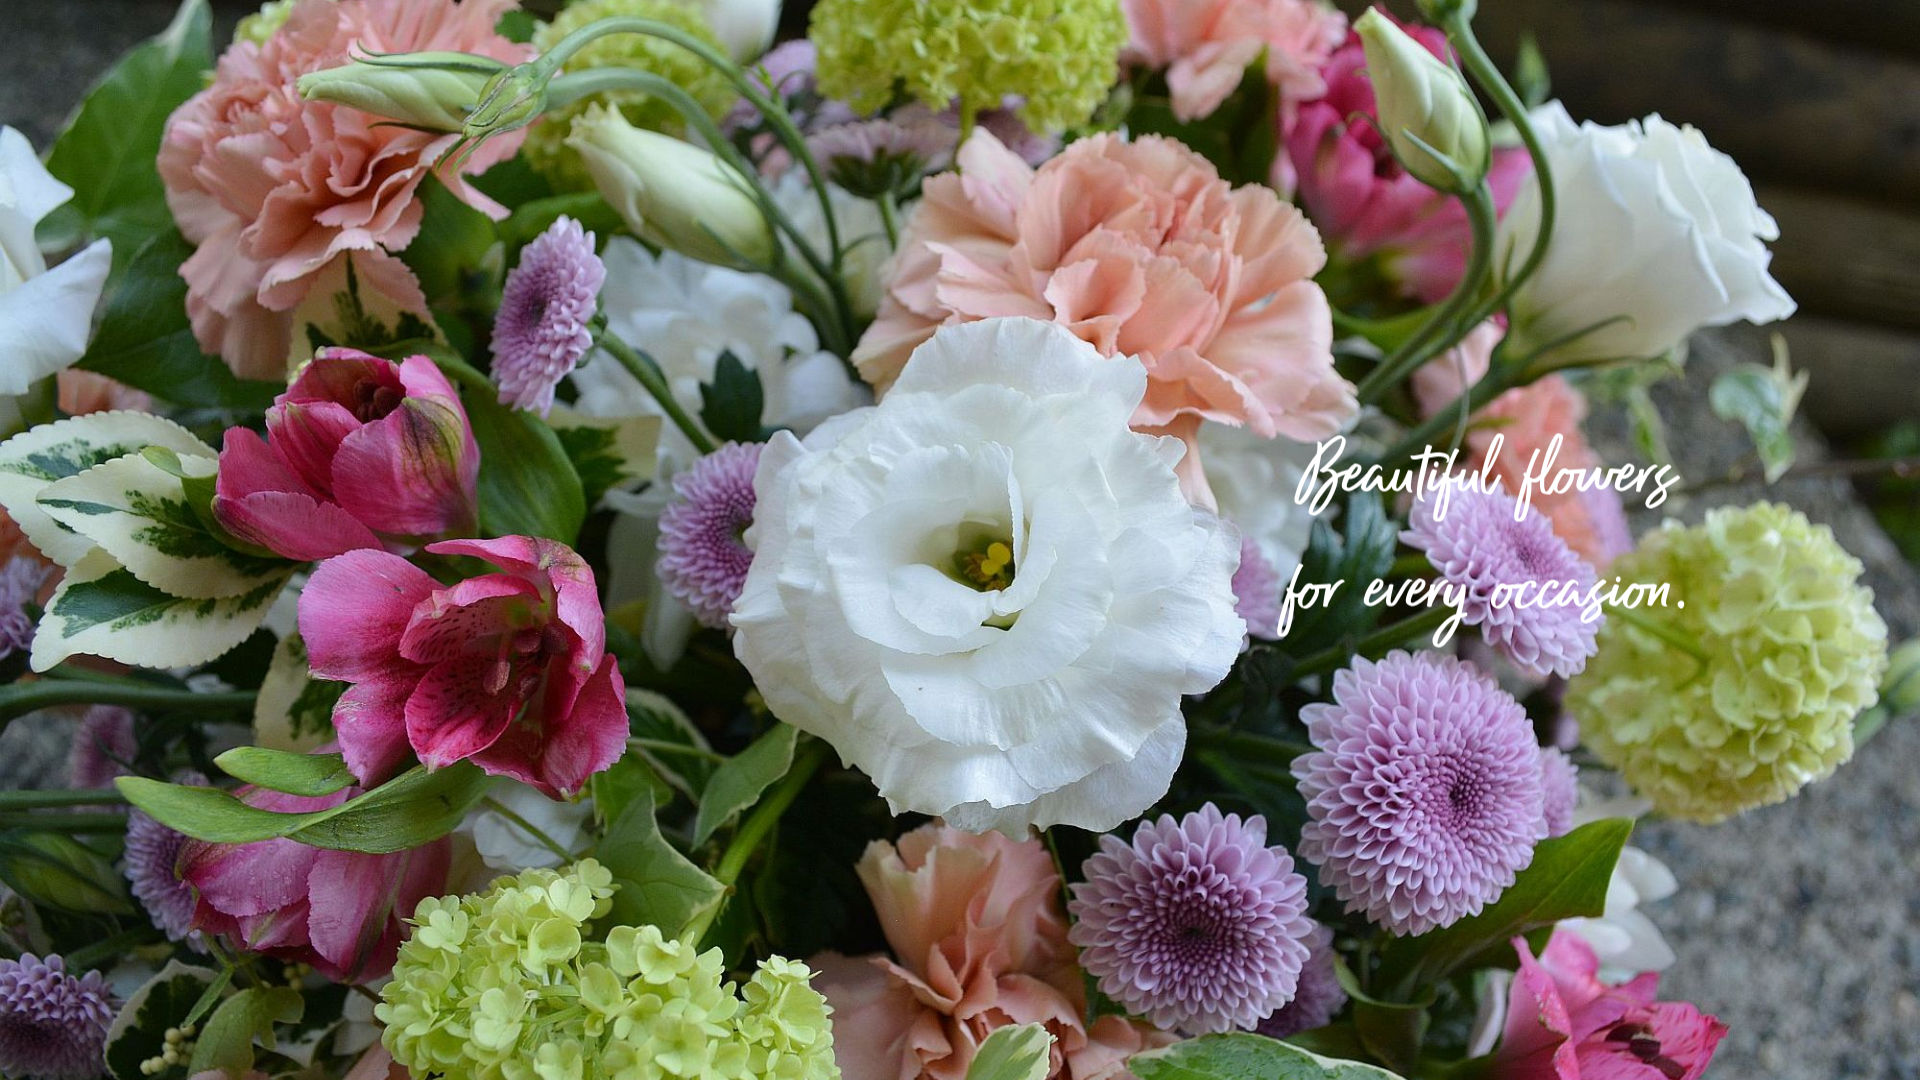 beautiful flowers for every occasion-home page(3)